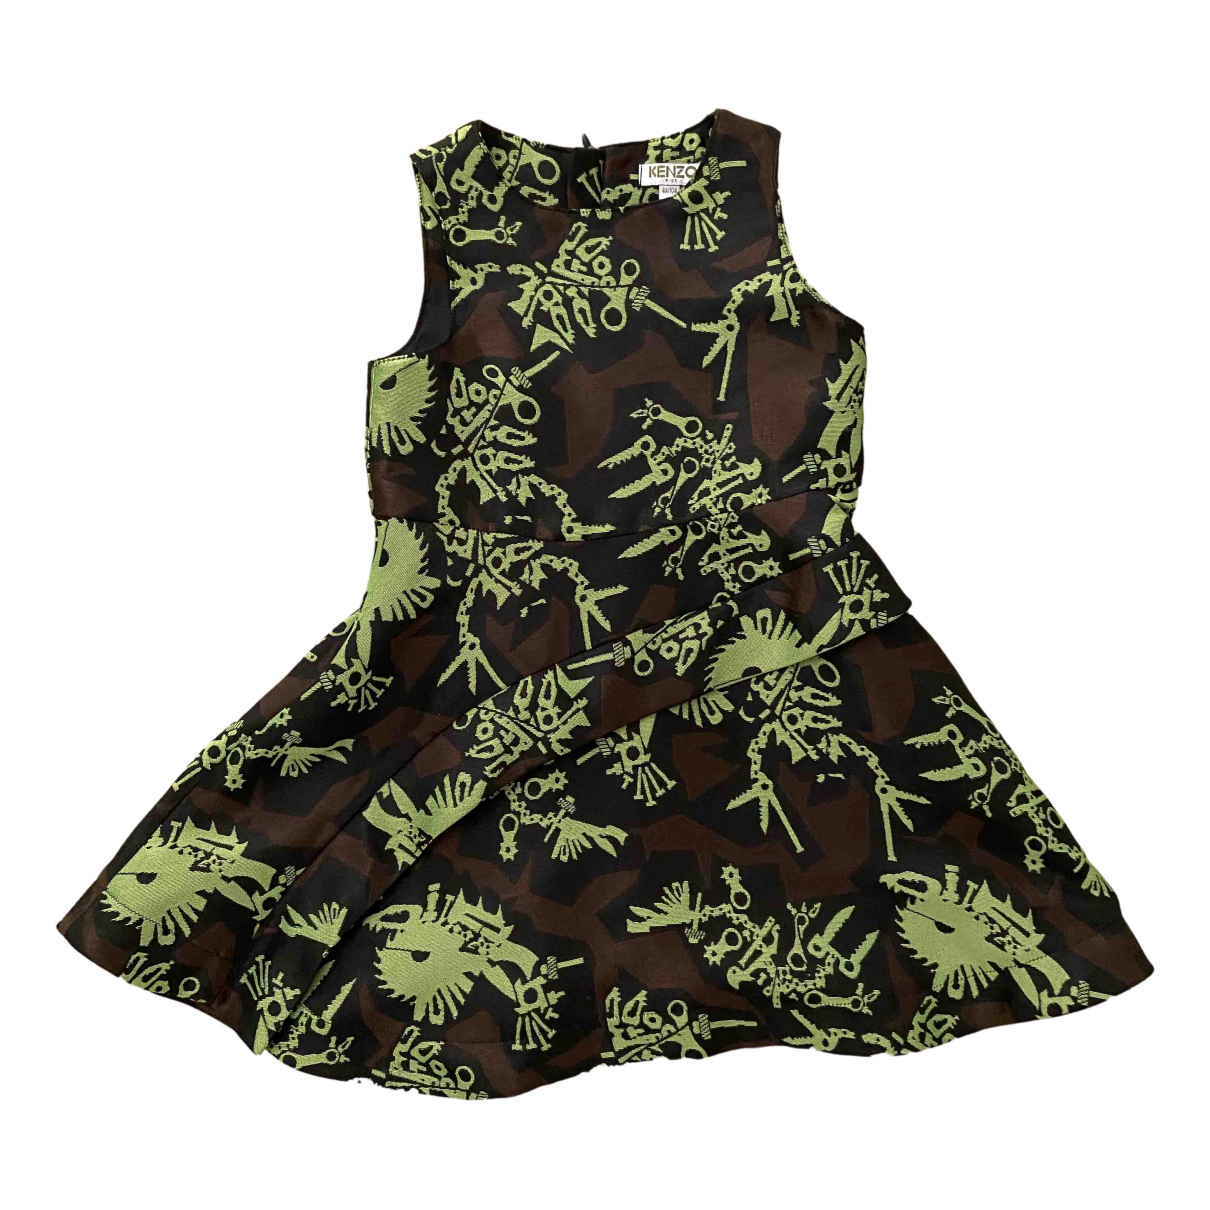 Kenzo \N Black Cotton dress for Kids 4 years - up to 102cm FR